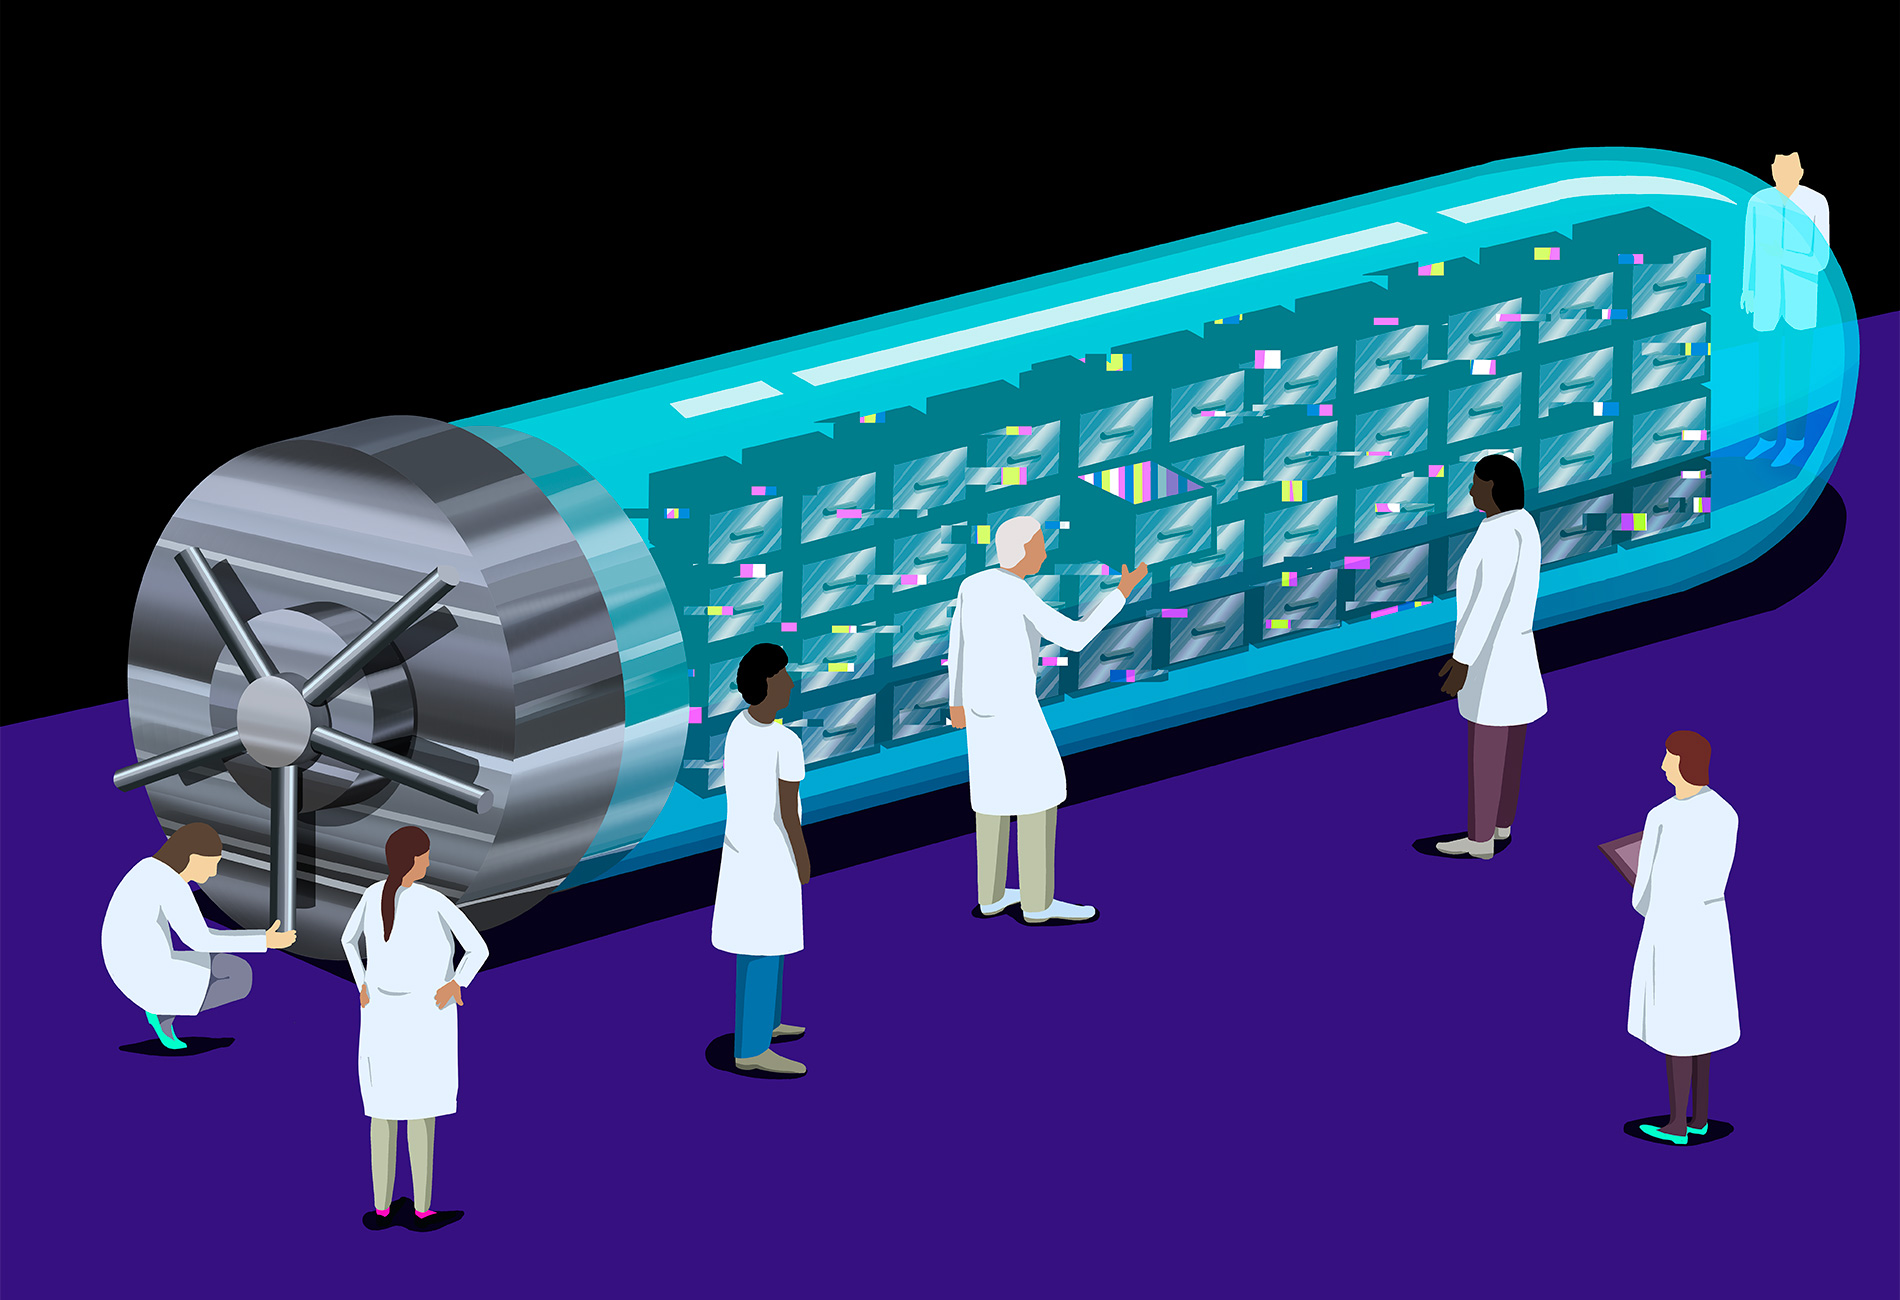 Illustration shows a giant lab vial that is also a safe full of secure records, surrounded by researchers who are accessing the data within.